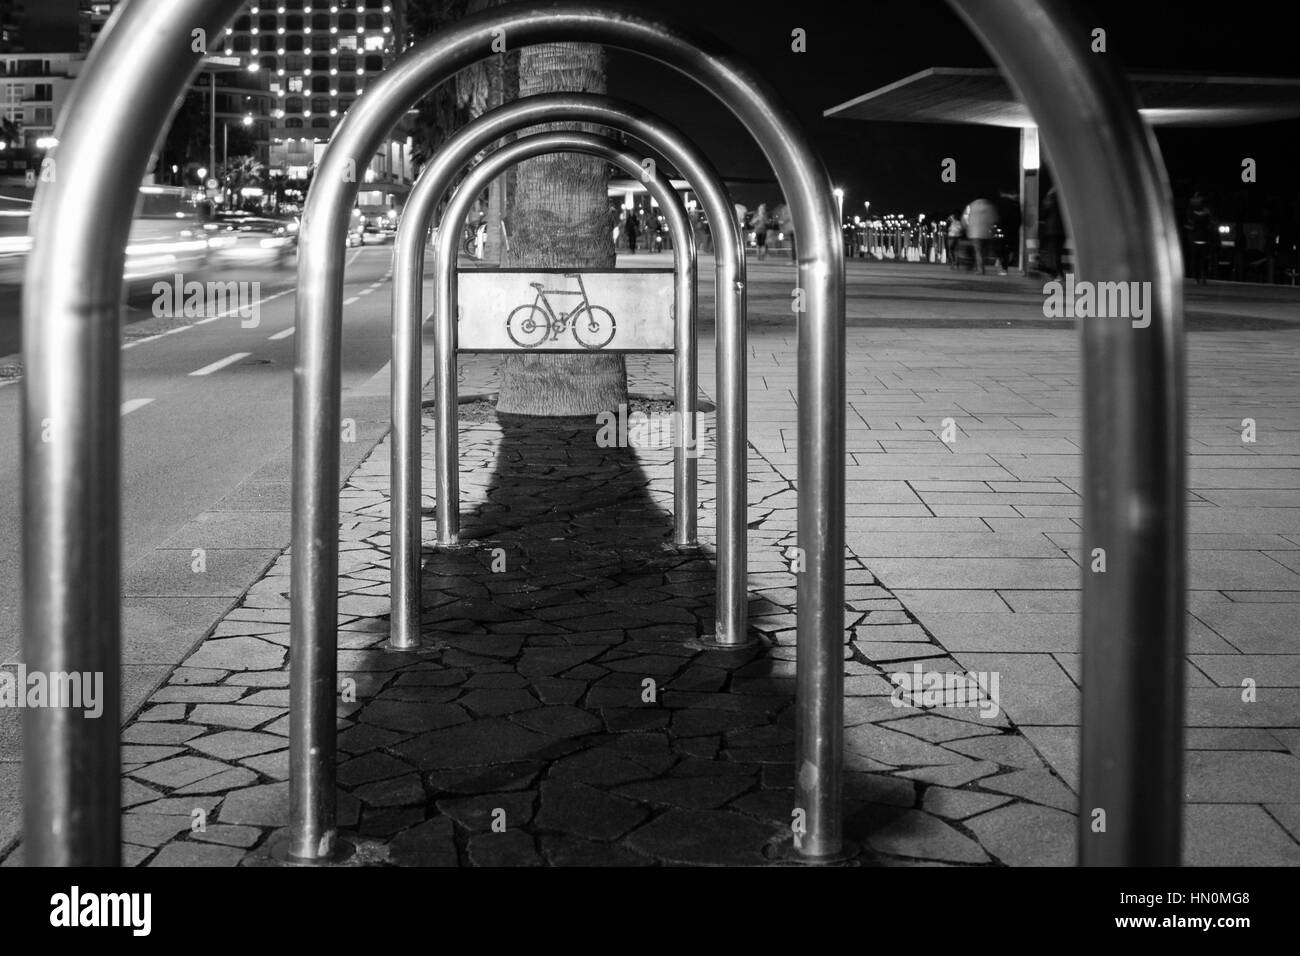 Bike Rack at Night - B&W - Black & White - Bicycle Emblem - Tel Aviv, Israel - Stock Image